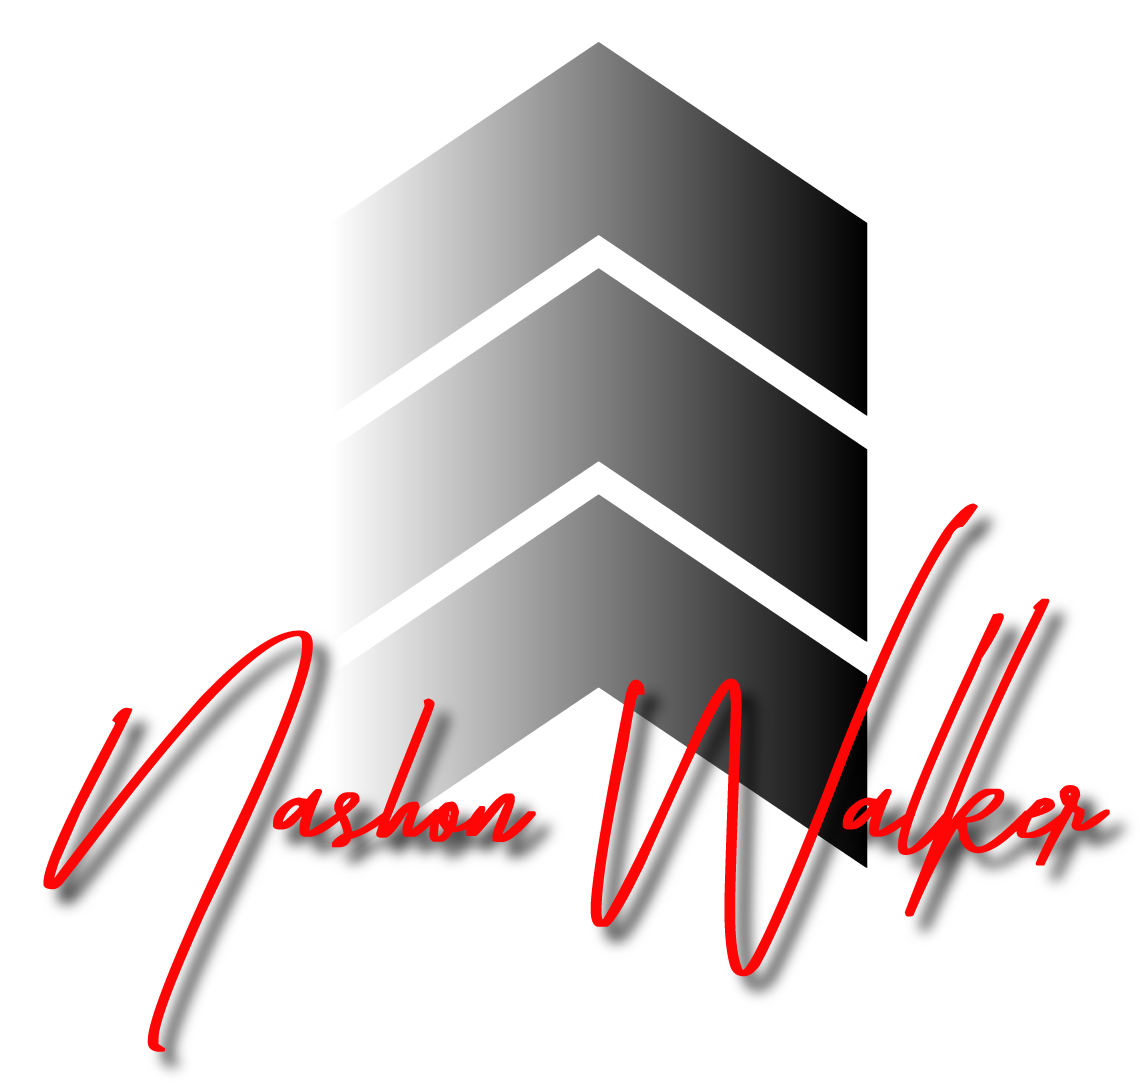 The Official Website Of Nashon Walker